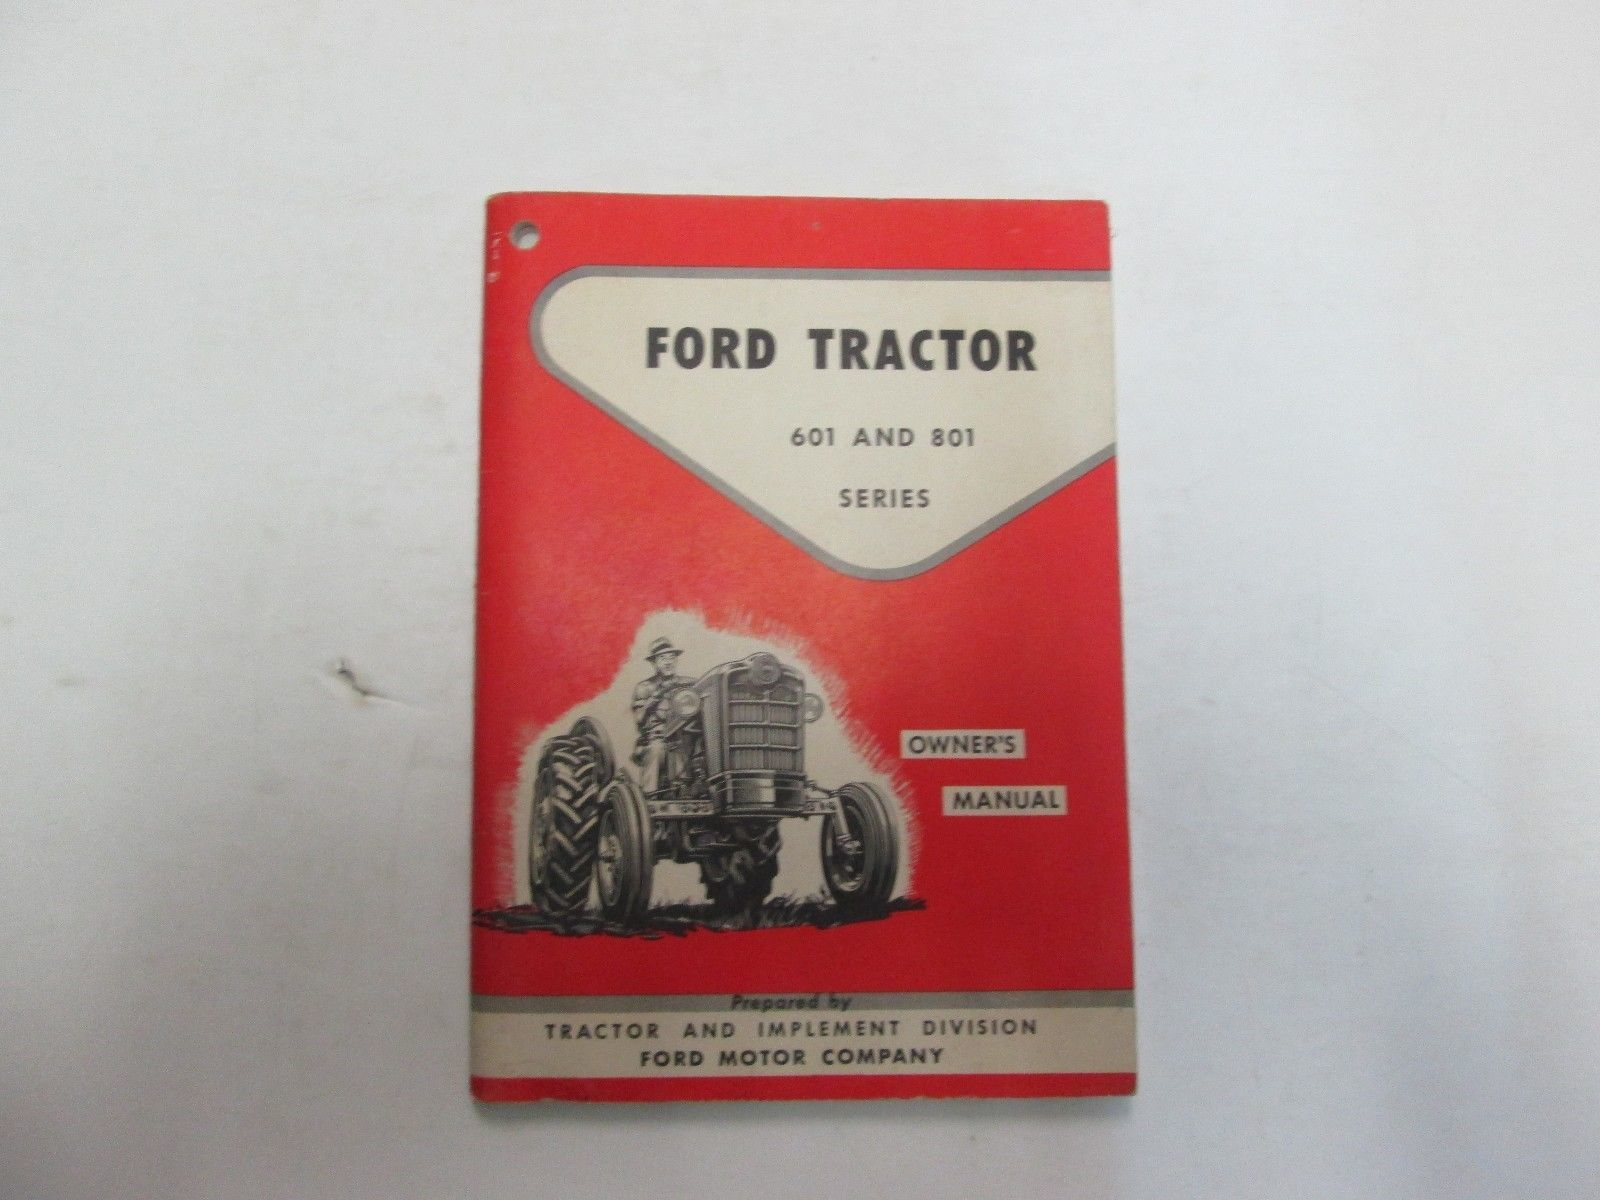 Ford Brochure 1950s 203 Listings Wiring Diagram 1956 Fairlane Sunliner 1958 Tractor 601 801 Series Owners Manual Minor Fading Wear Stains Oem 58 1975